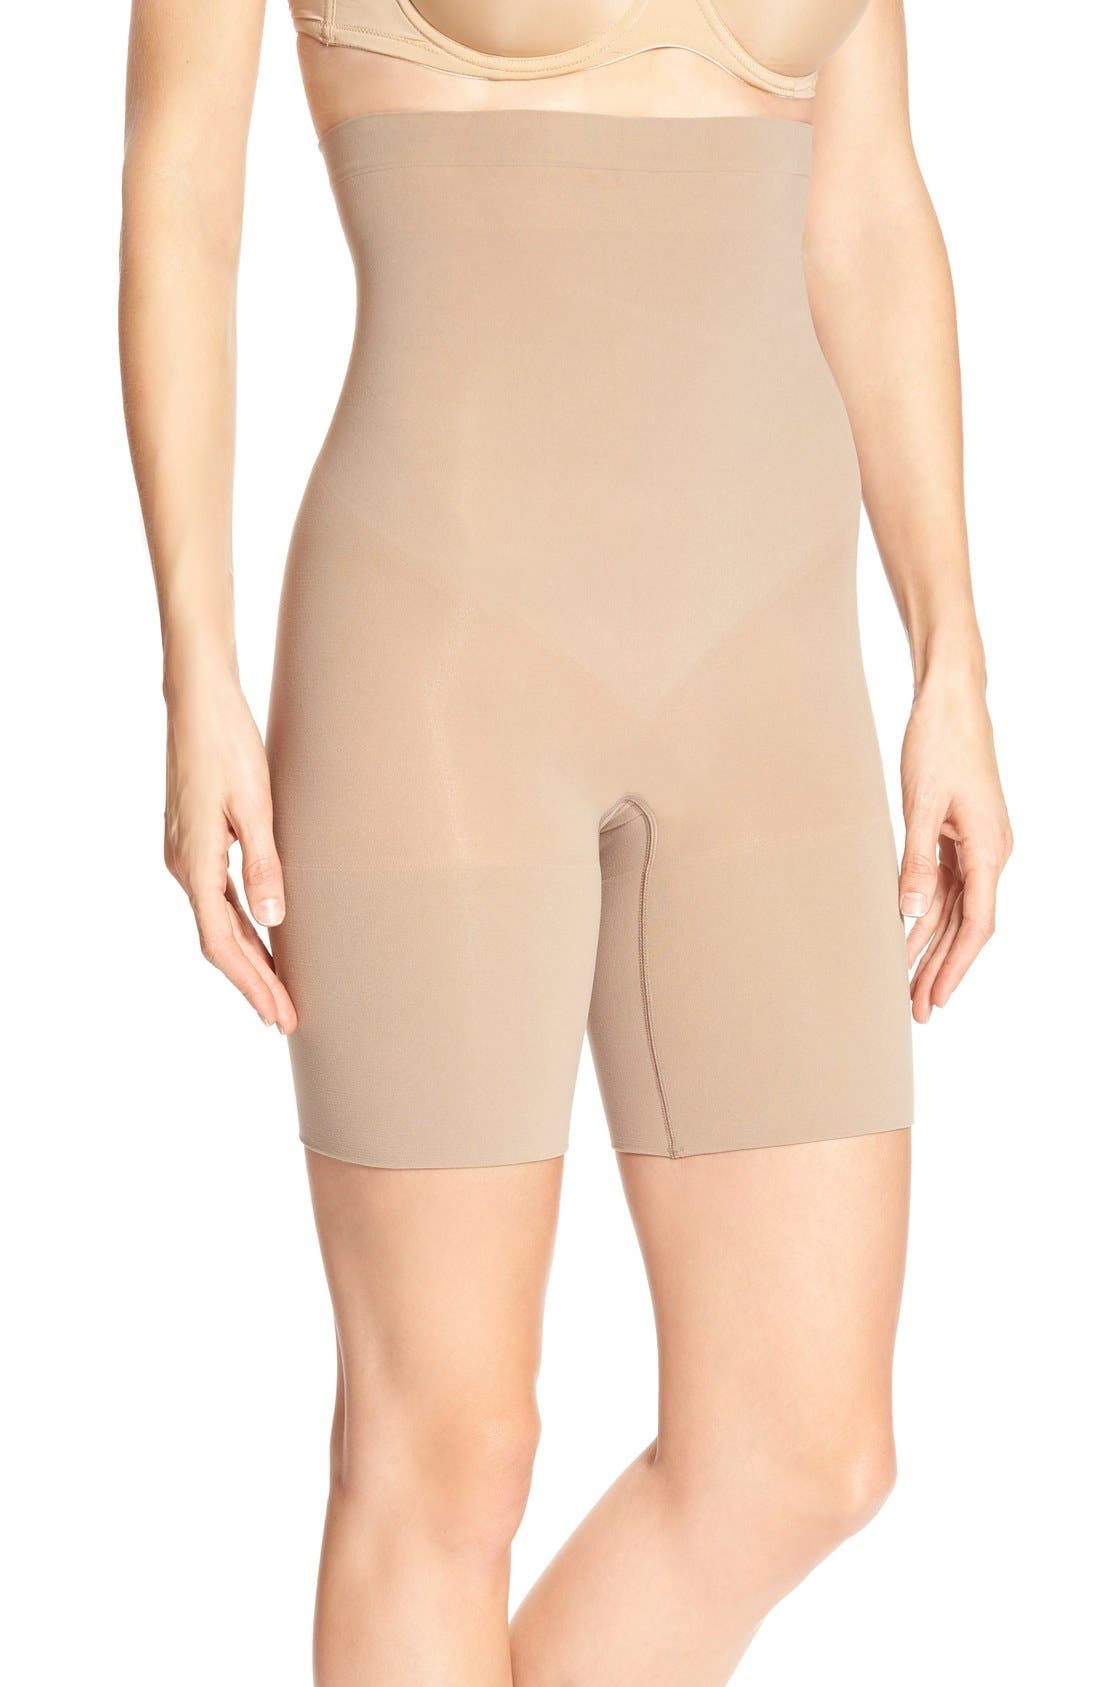 Alternate Image 1 Selected - SPANX® Higher Power Mid-Thigh Shaping Shorts (Regular & Plus Size)